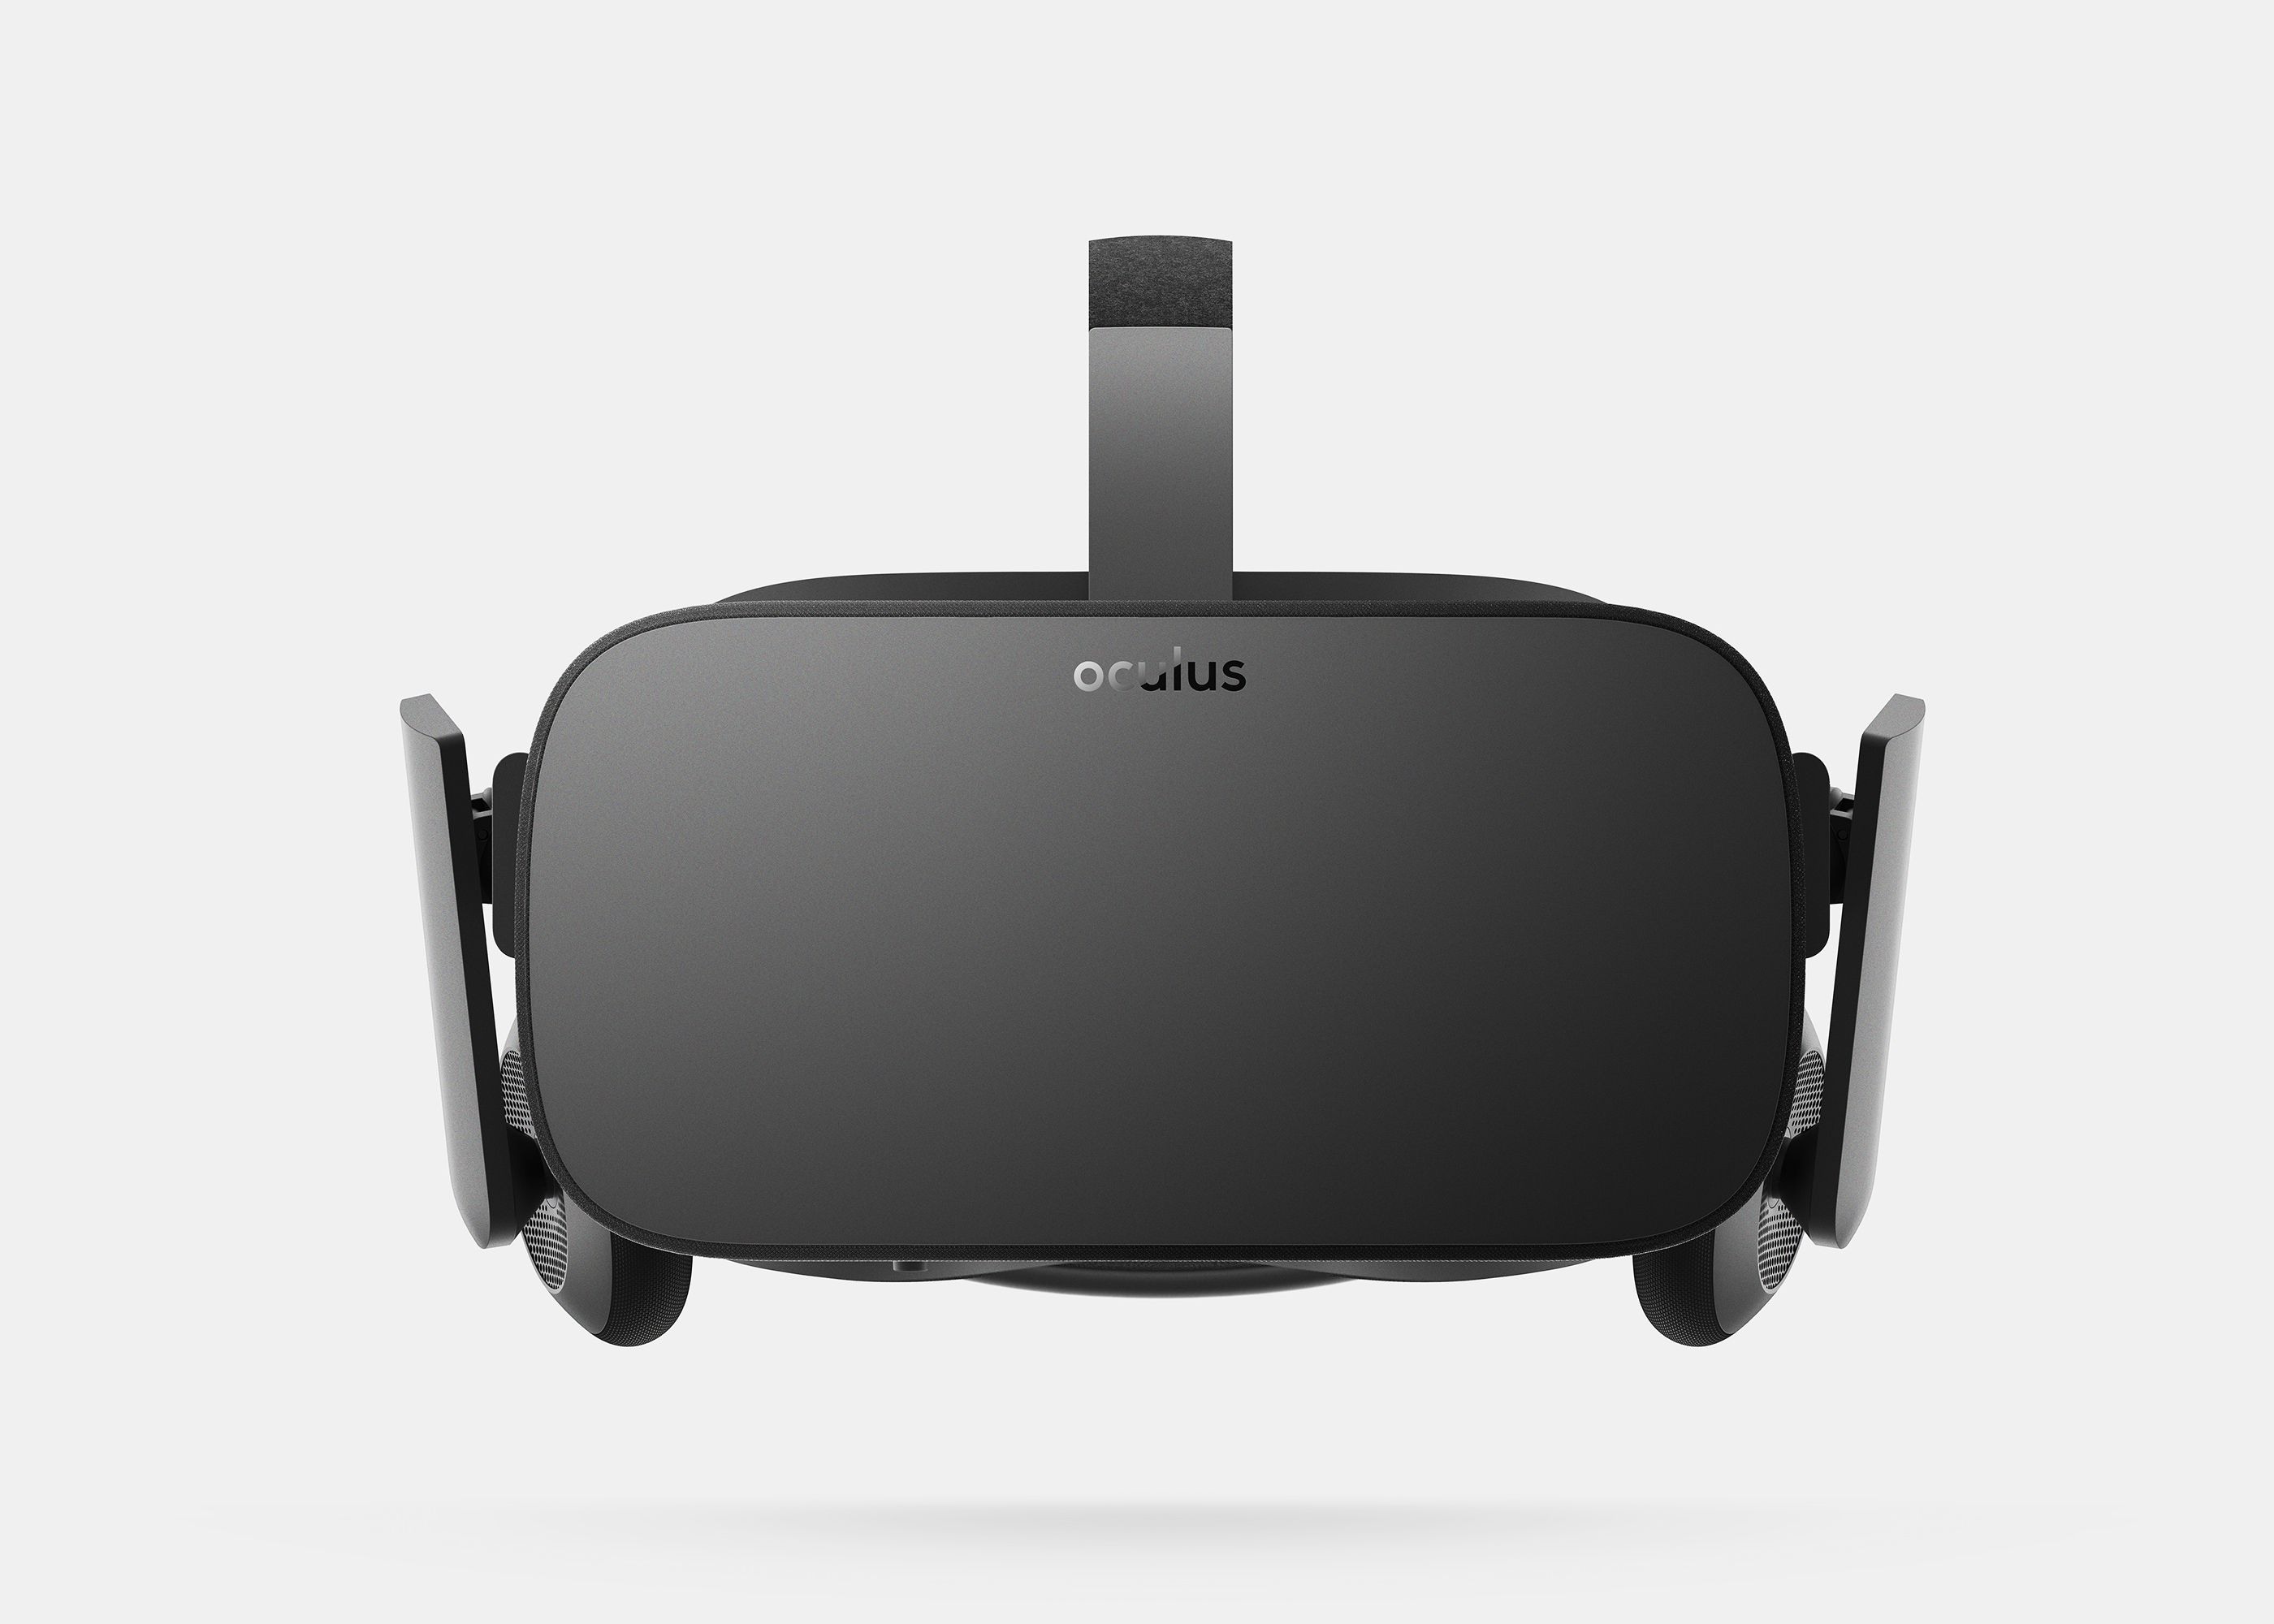 ab62ffaad04 Oculus Rift  A Look at Oculus VR s Flagship Virtual Reality Headset